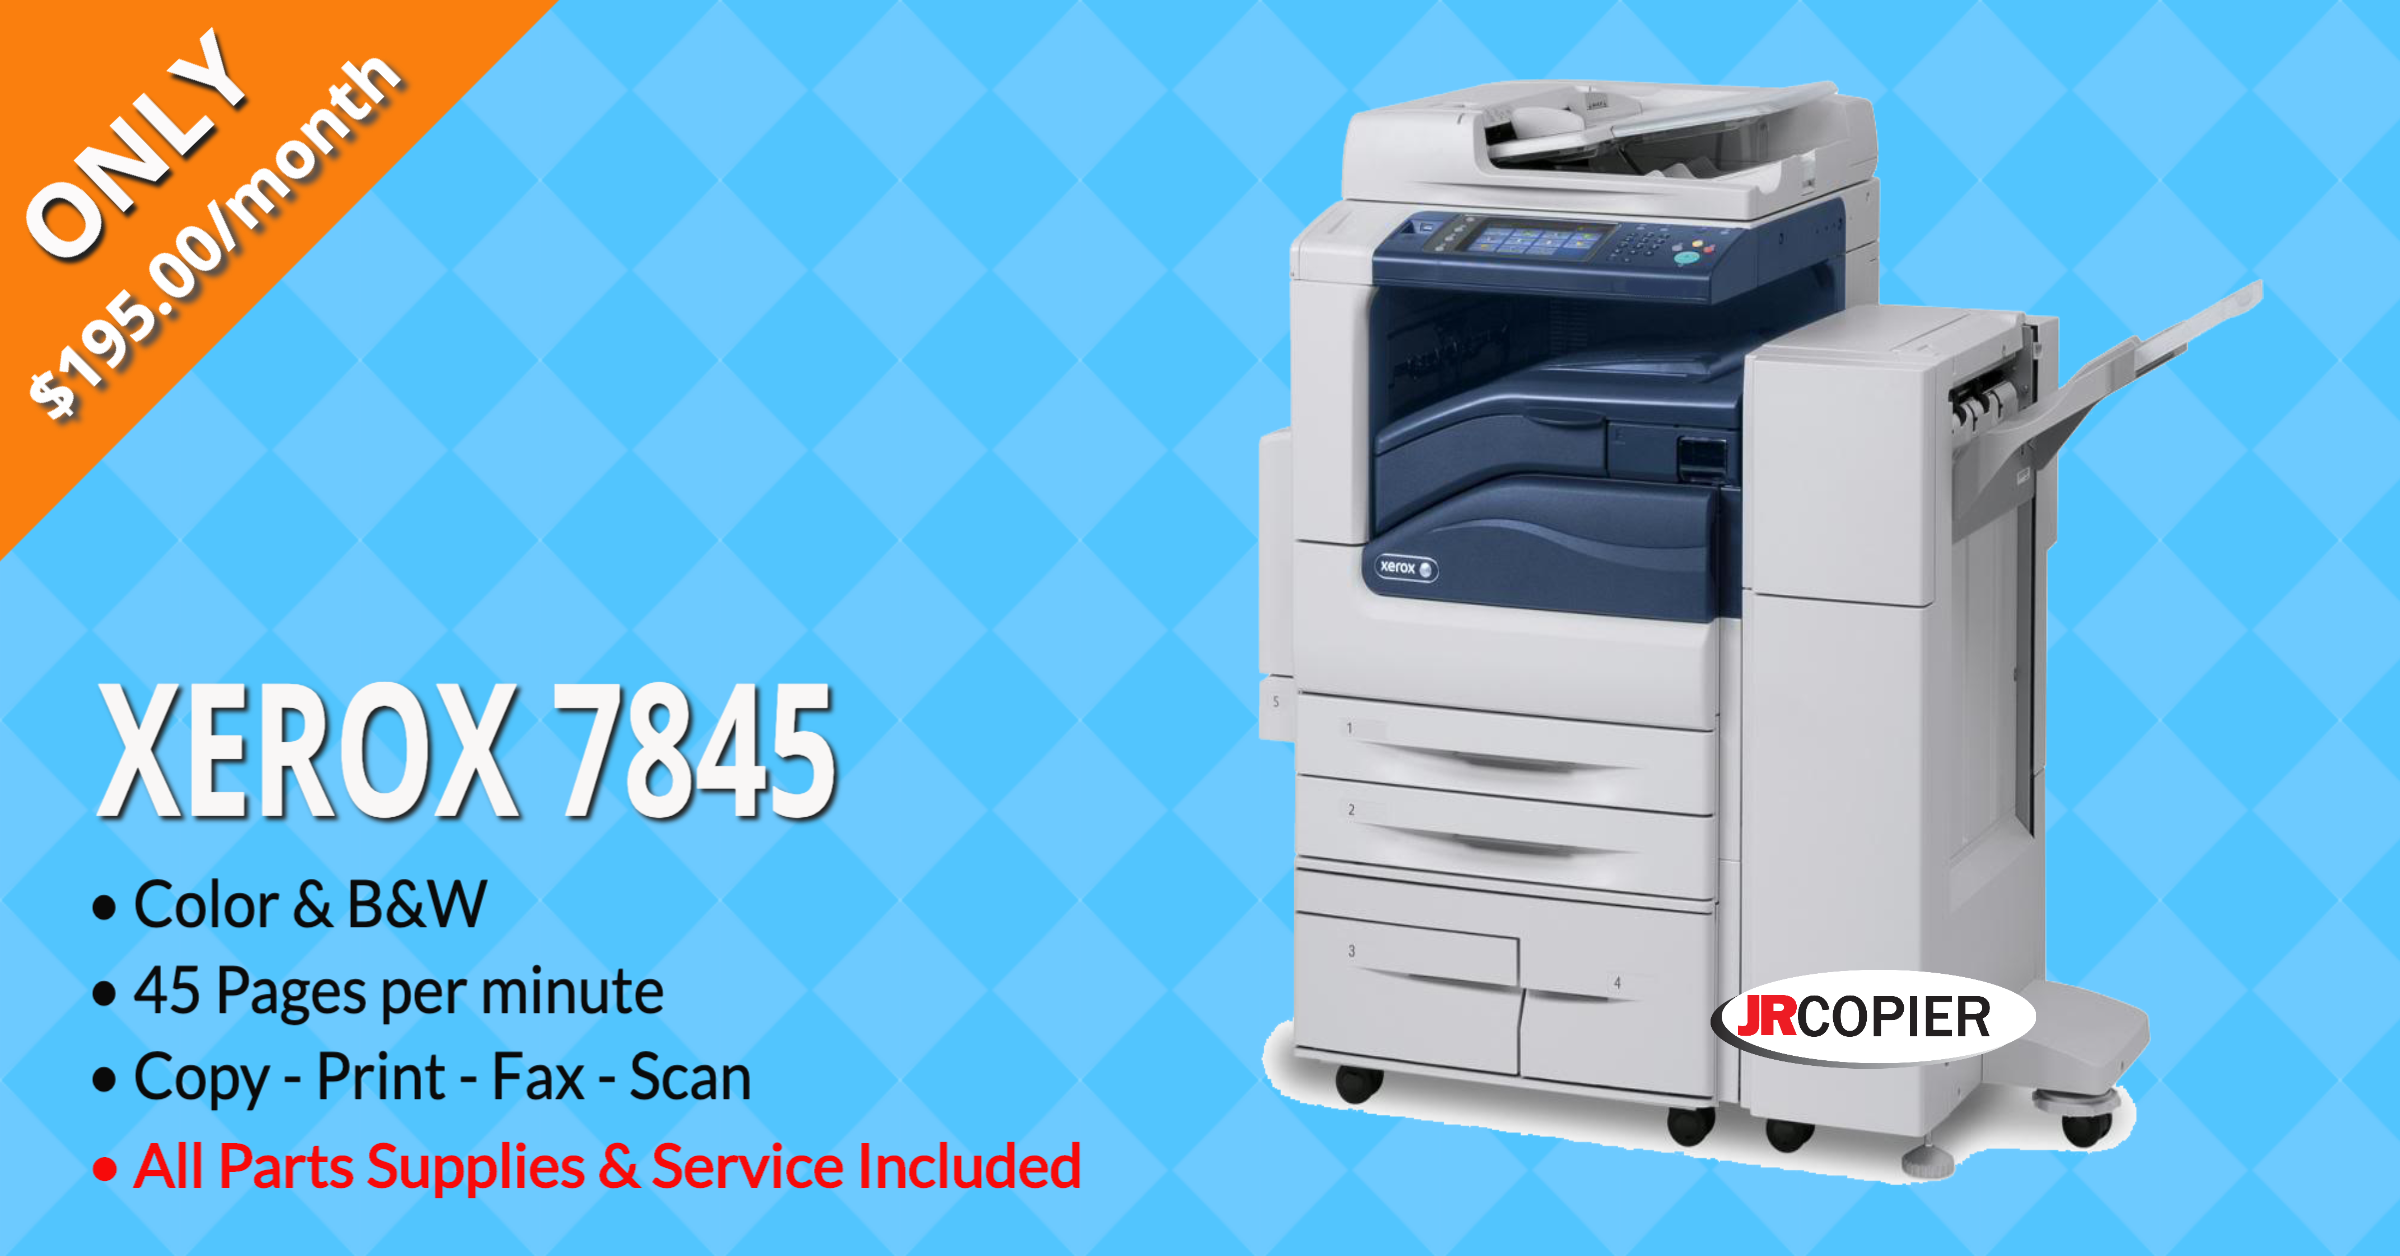 Multifunction Printer Sales 33928, 33929, 33967, 34134, 34135